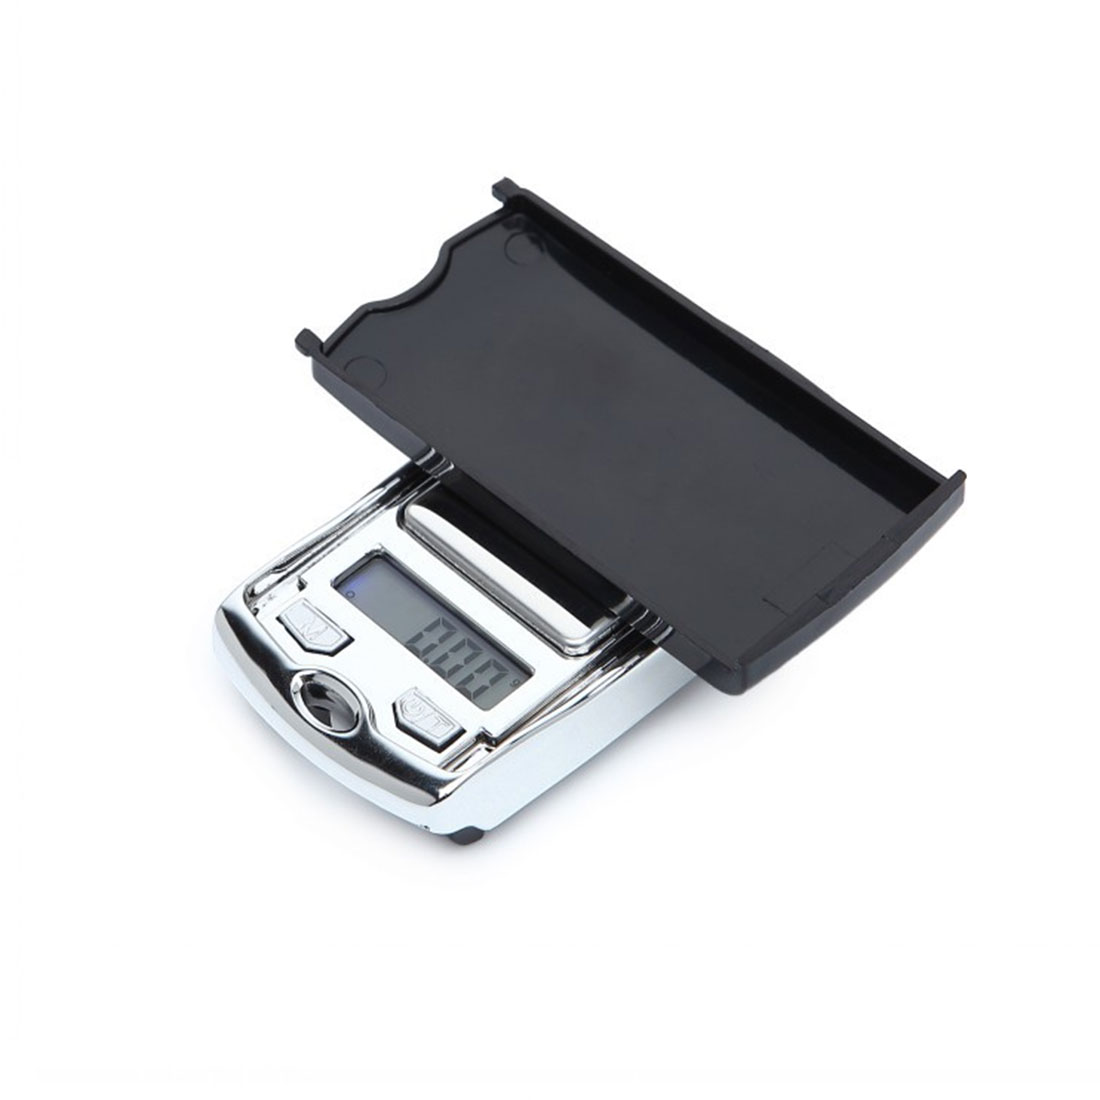 100g X 0.01g Portable Mini Precision Digital Scales For Gold Sterling Silver Scale Jewelry 0.01 Weight Electronic Scales